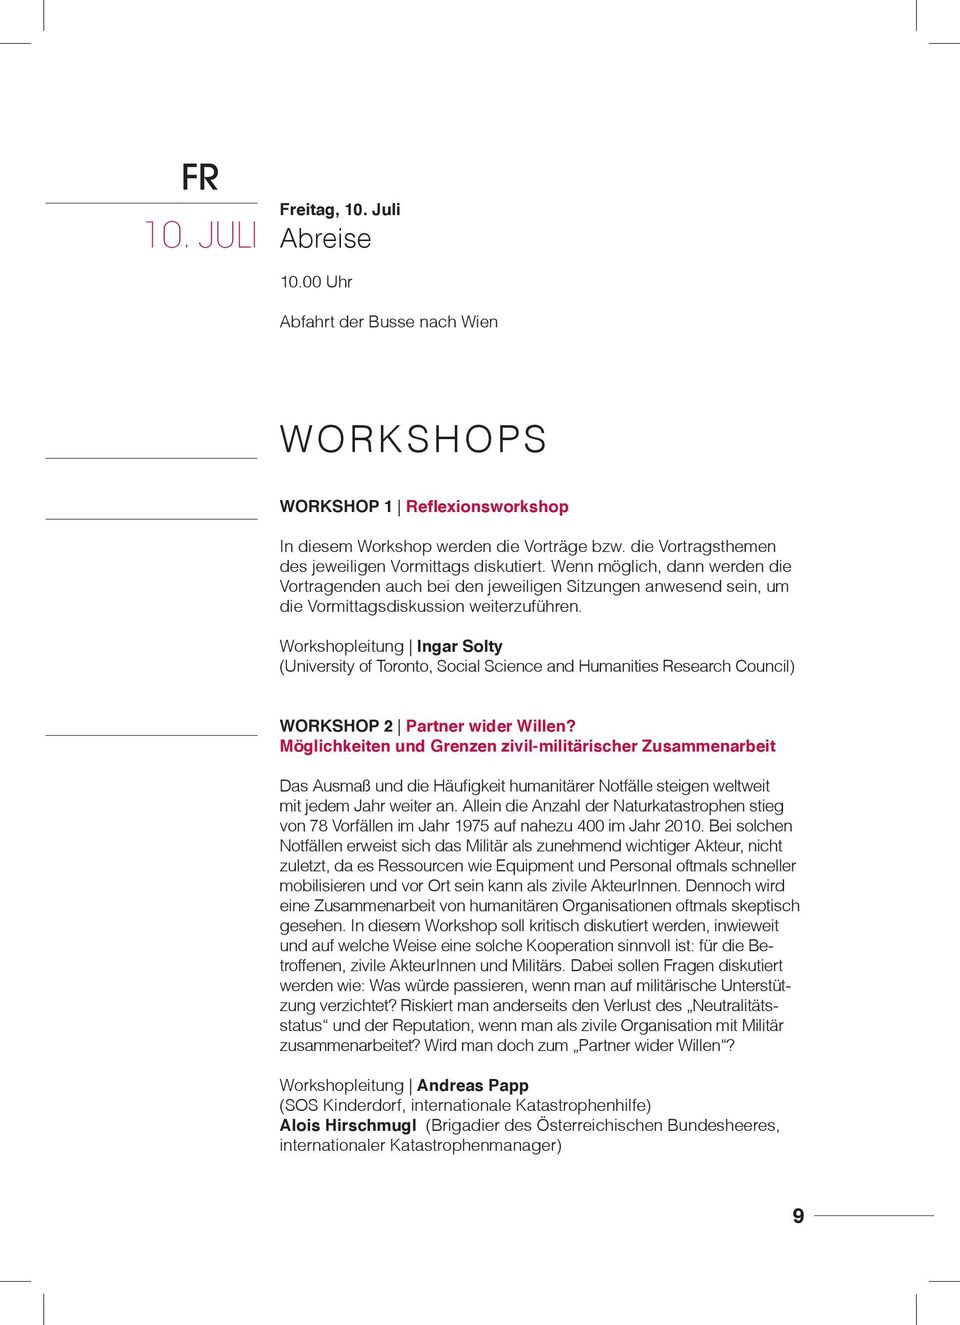 Workshopleitung Ingar Solty (University of Toronto, Social Science and Humanities Research Council) Workshop 2 Partner wider Willen?